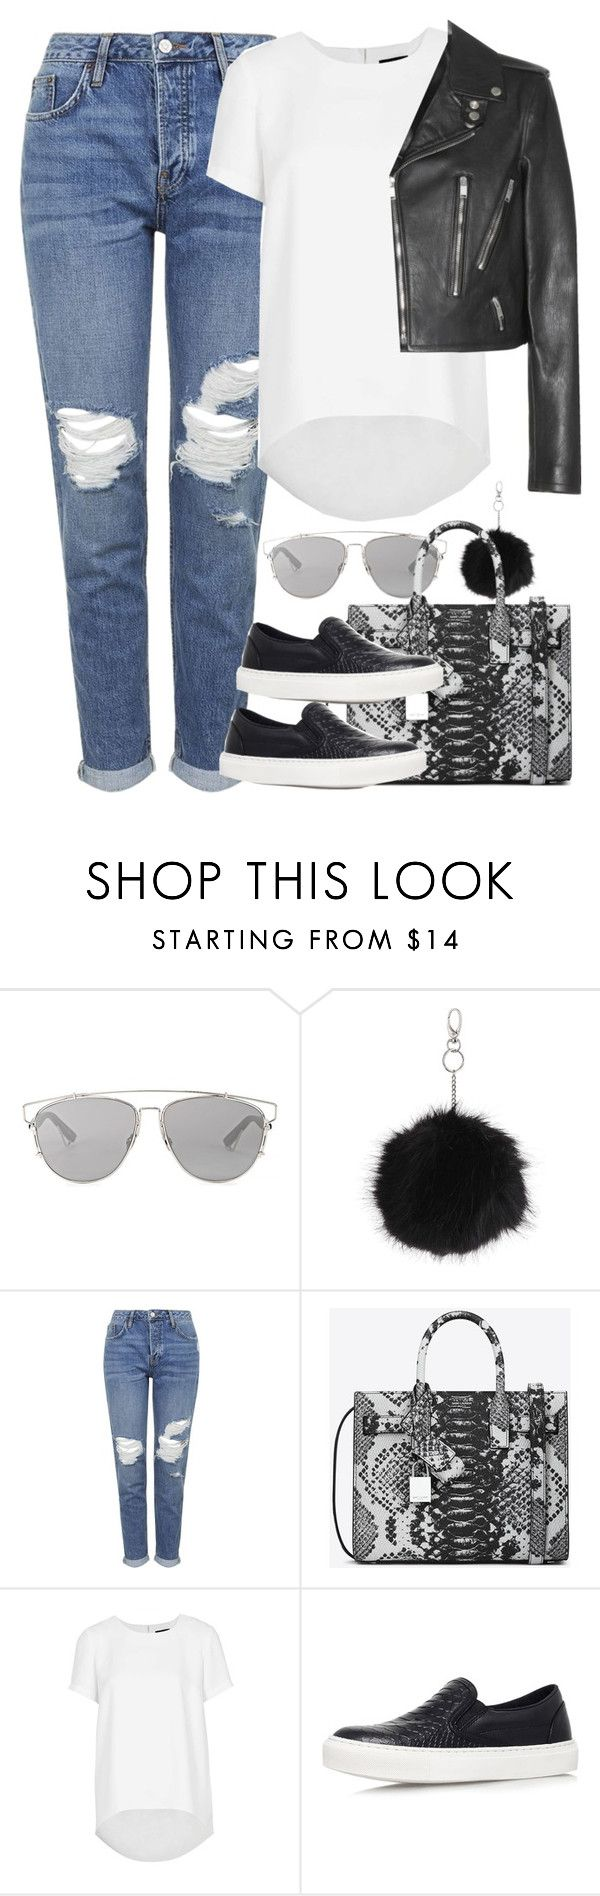 """""""Untitled #3877"""" by amyn99 ❤ liked on Polyvore featuring Christian Dior, Topshop, Yves Saint Laurent, women's clothing, women, female, woman, misses and juniors"""